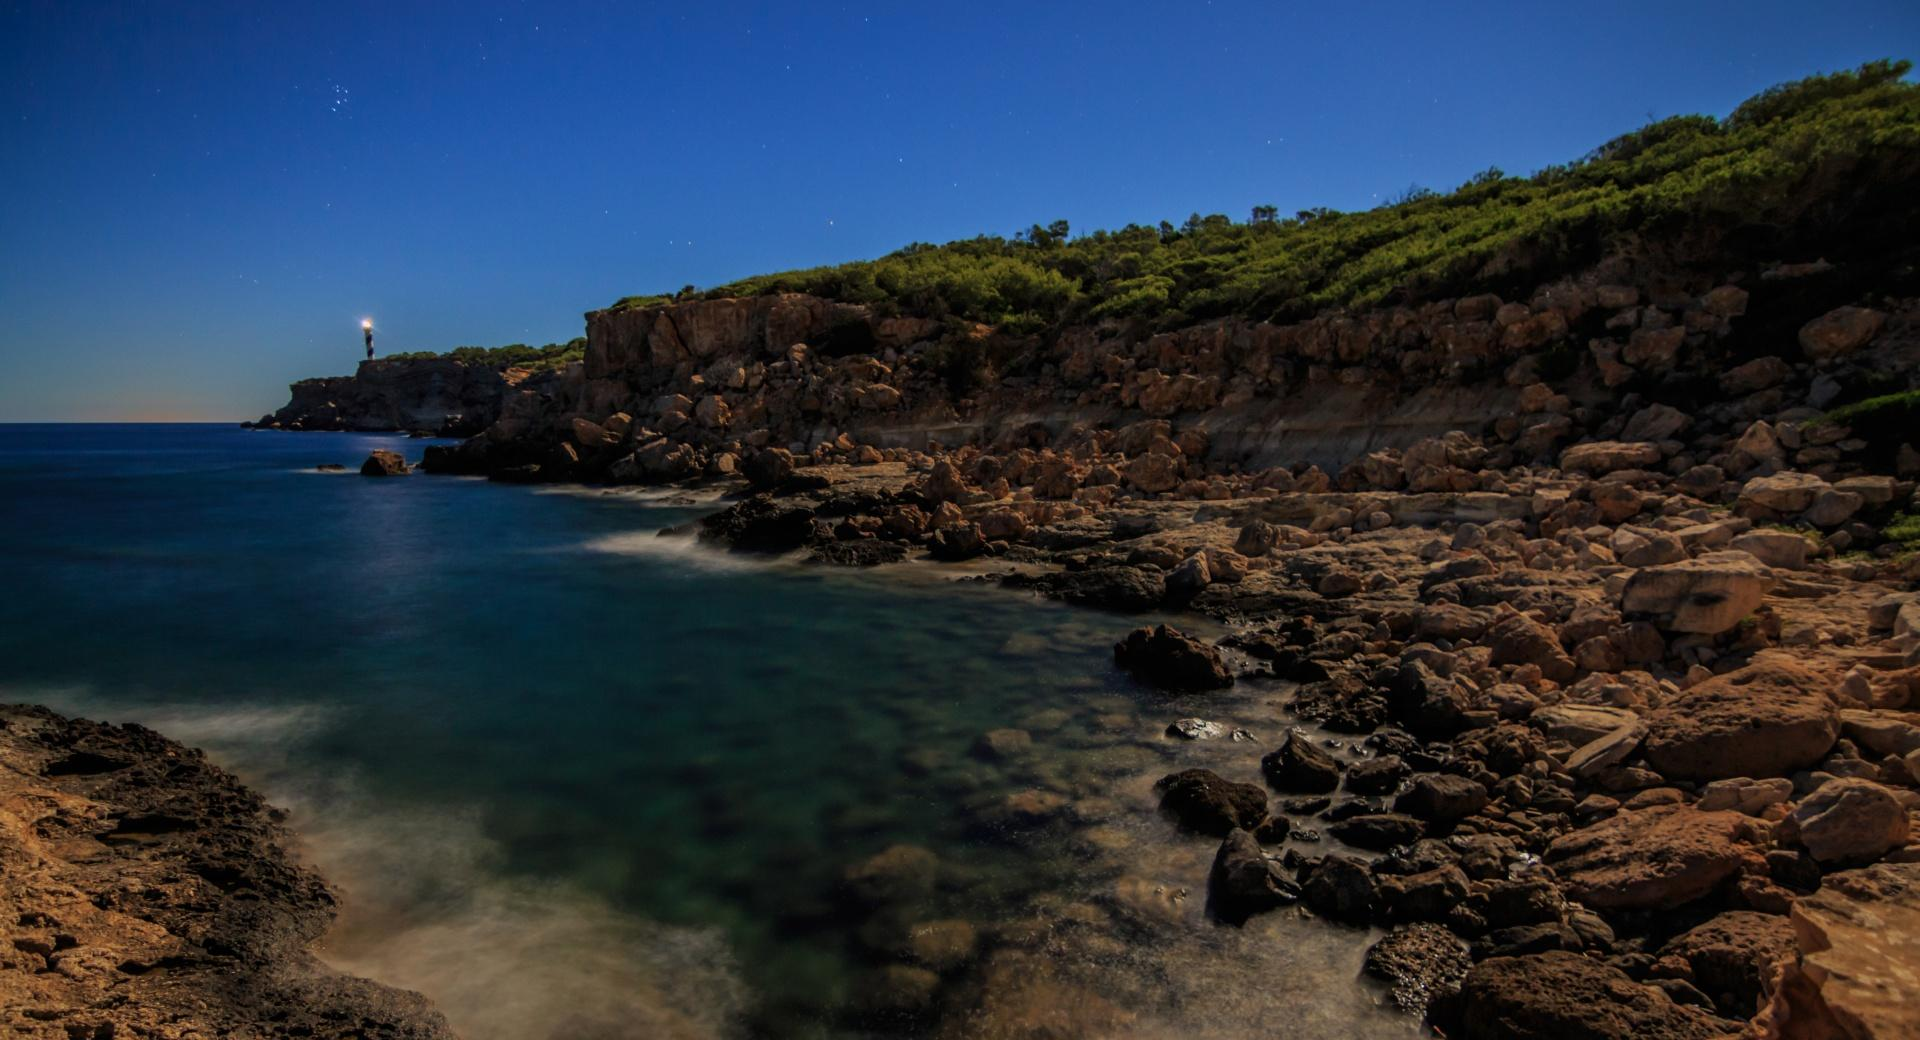 Leuchtturm Far del Moscater auf Ibiza wallpapers HD quality